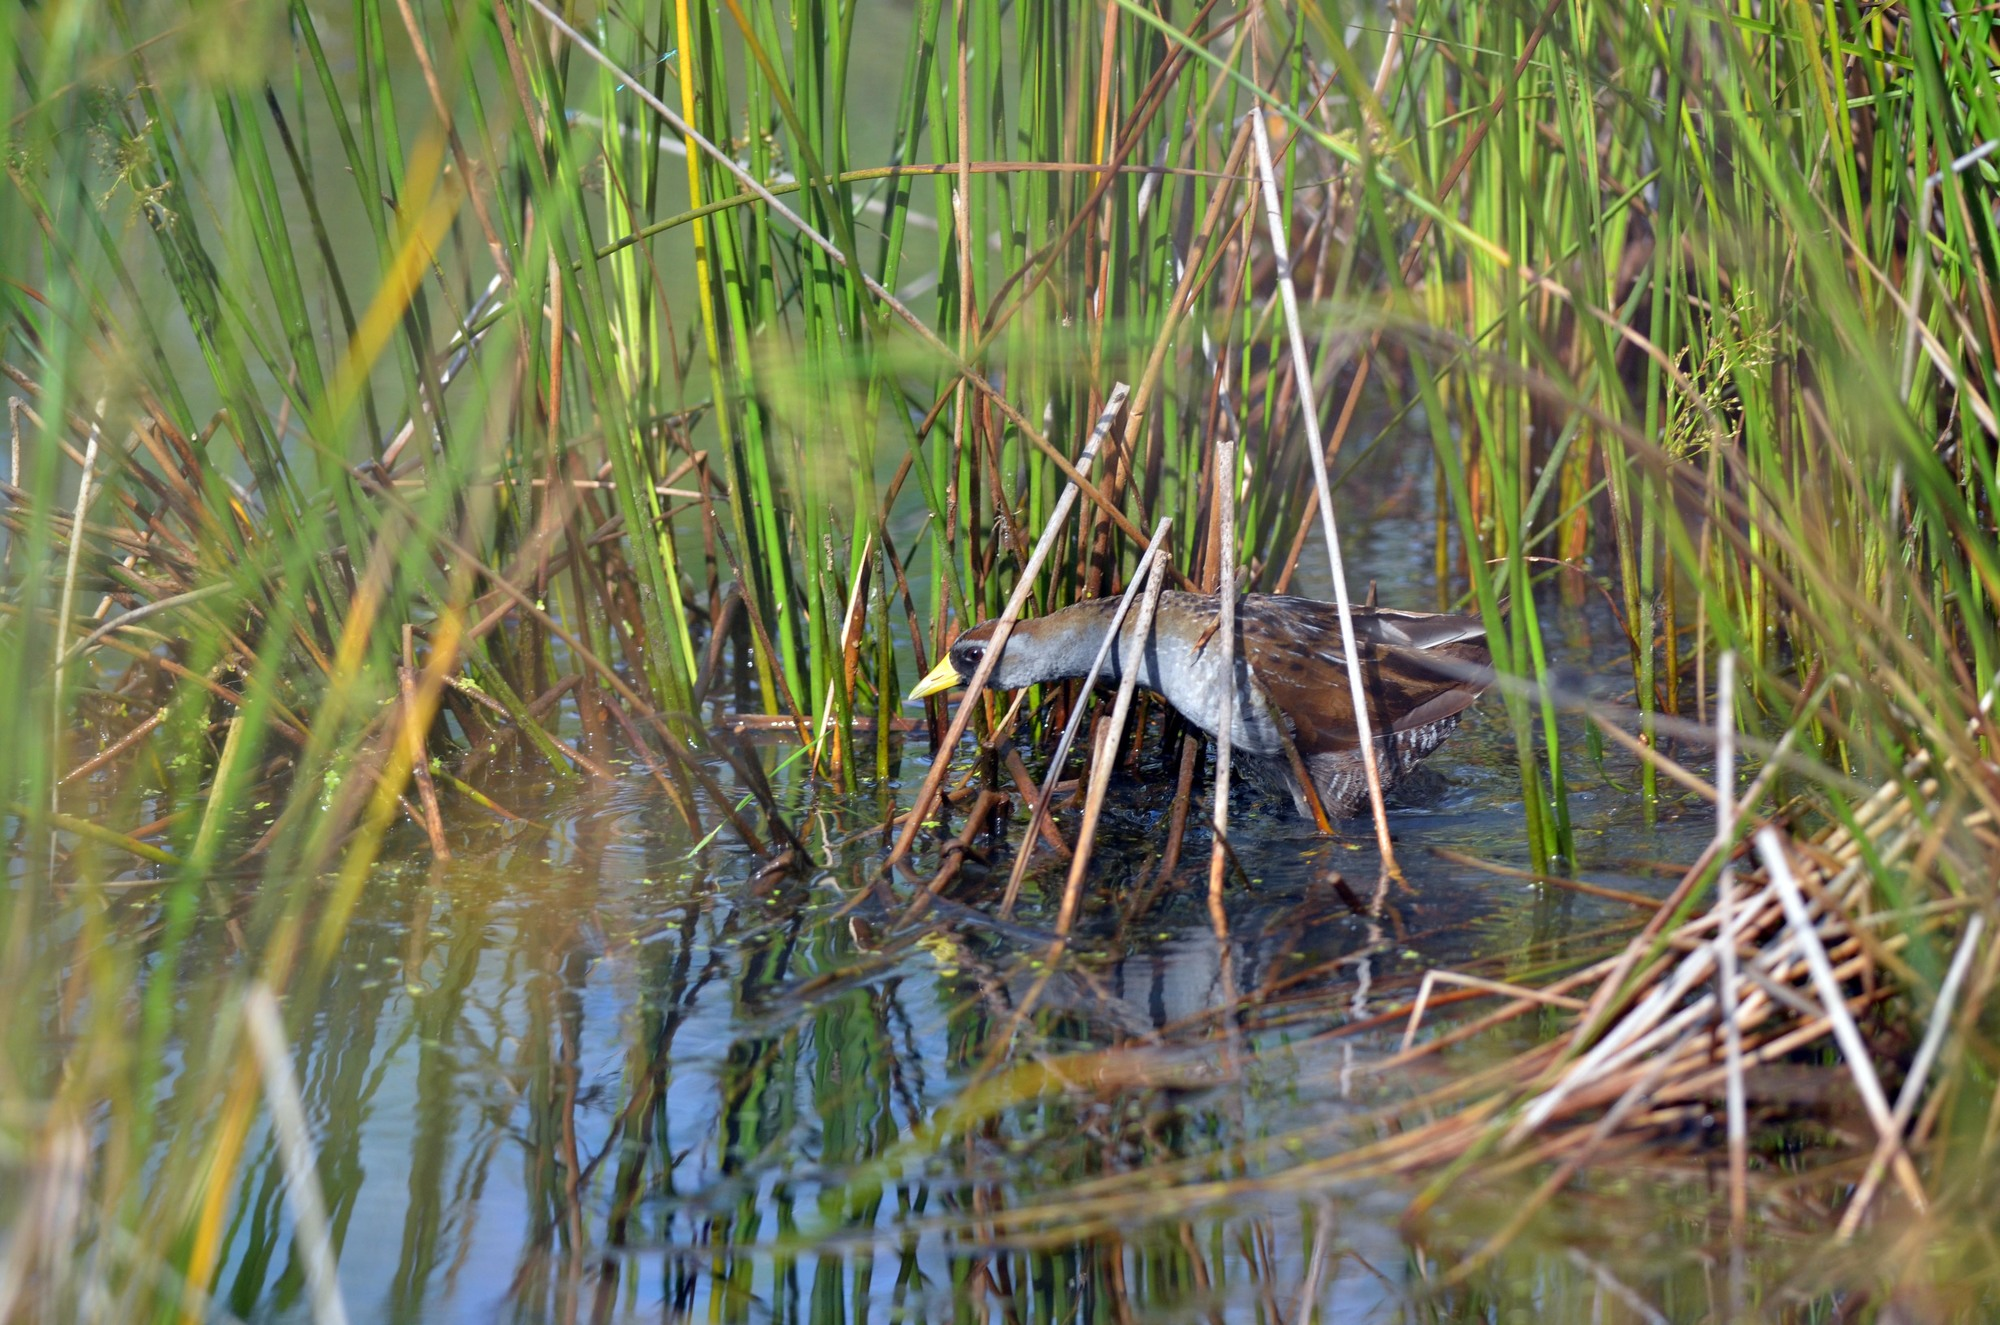 Home to a wide variety of birds, including the secretive sora, Michigan's wetlands make great wildlife viewing destinations.